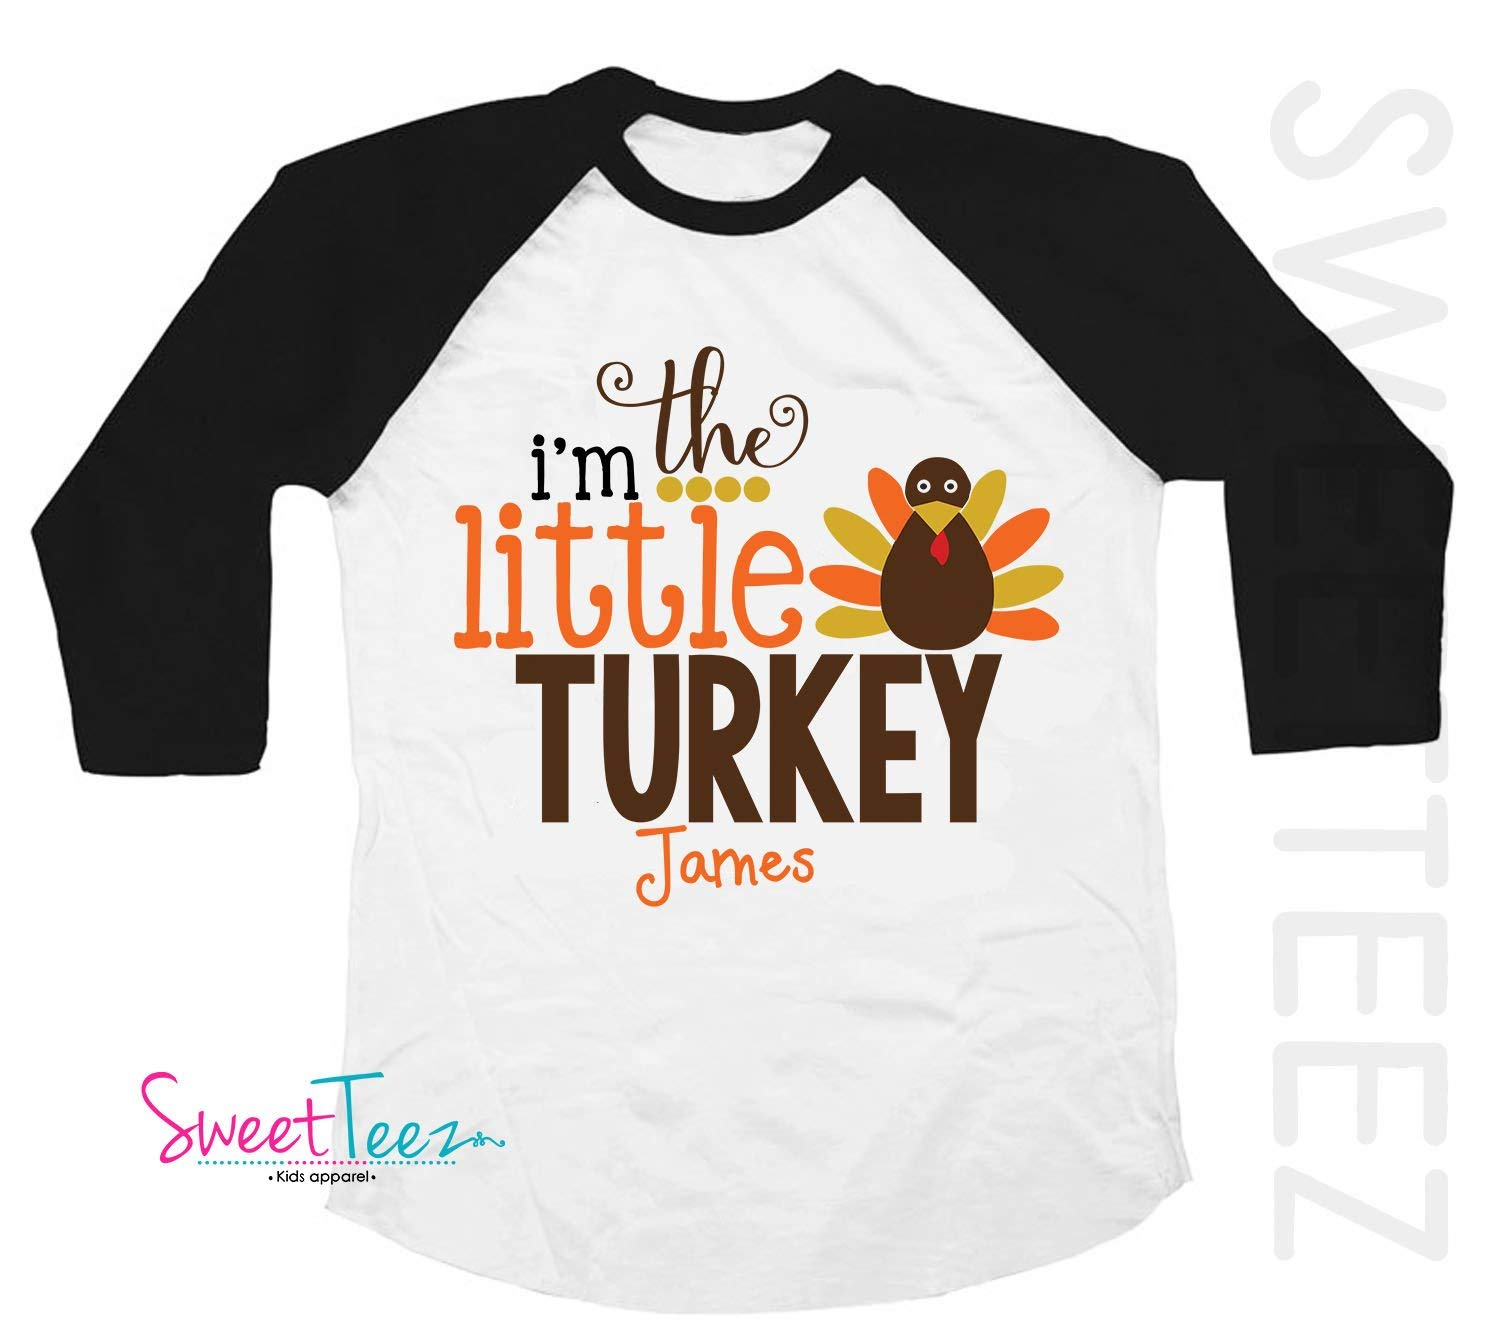 1f07788ae Get Quotations · Little Turkey Shirt Personalized Big Turkey Shirt Black  Sleeve Raglan Shirt Handmade for Thanksgiving